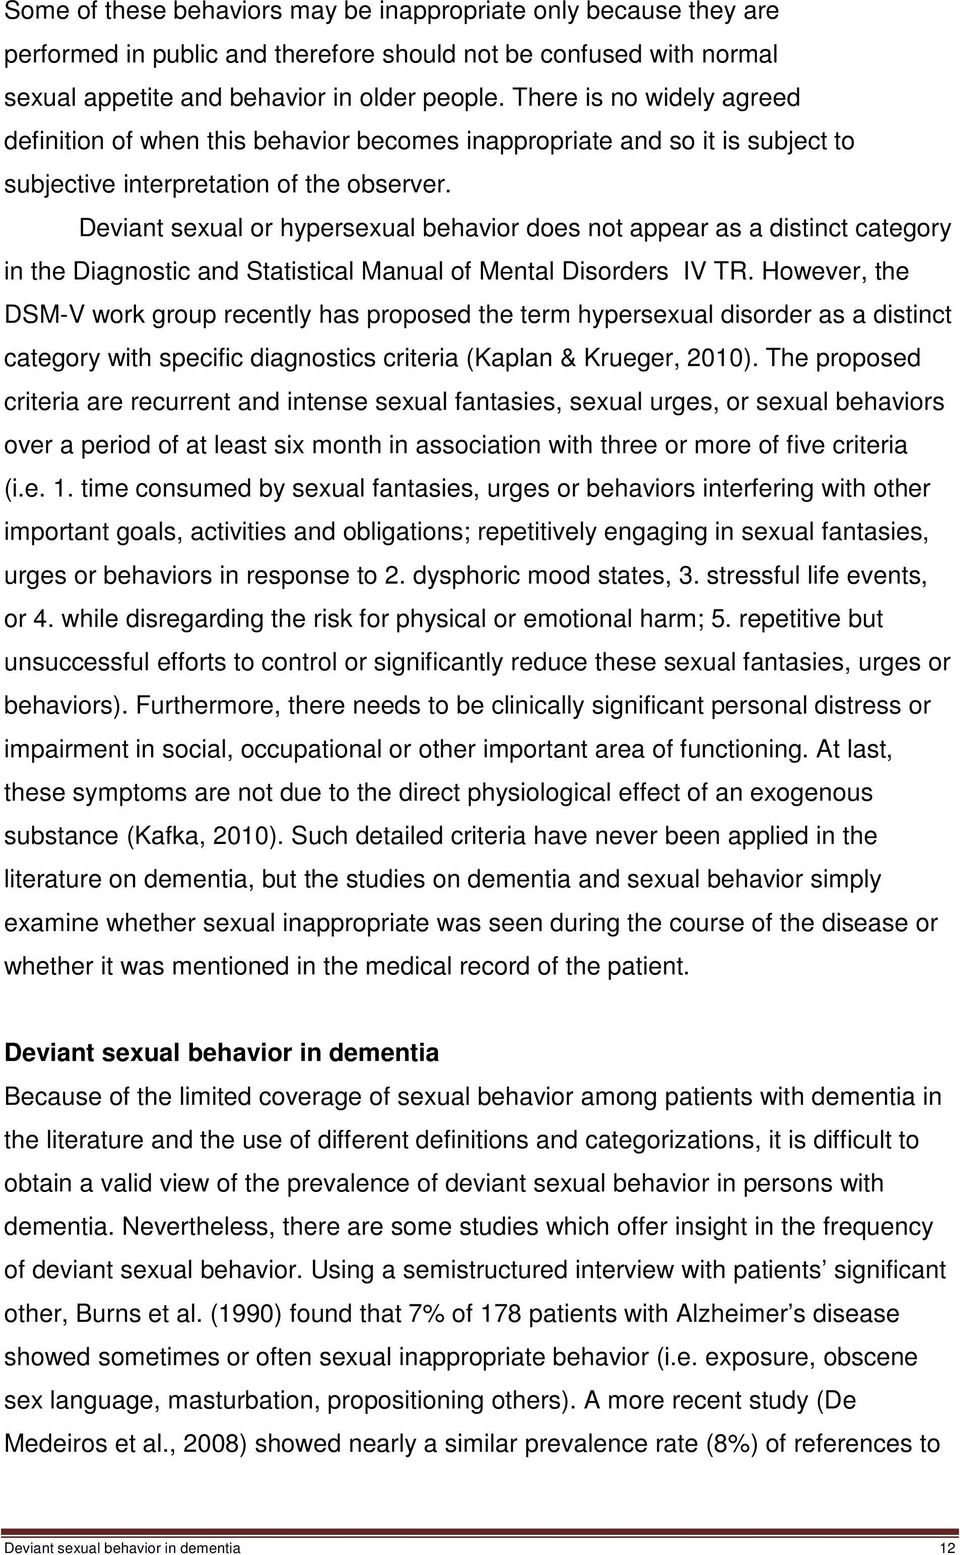 Deviant sexual or hypersexual behavior does not appear as a distinct category in the Diagnostic and Statistical Manual of Mental Disorders IV TR.